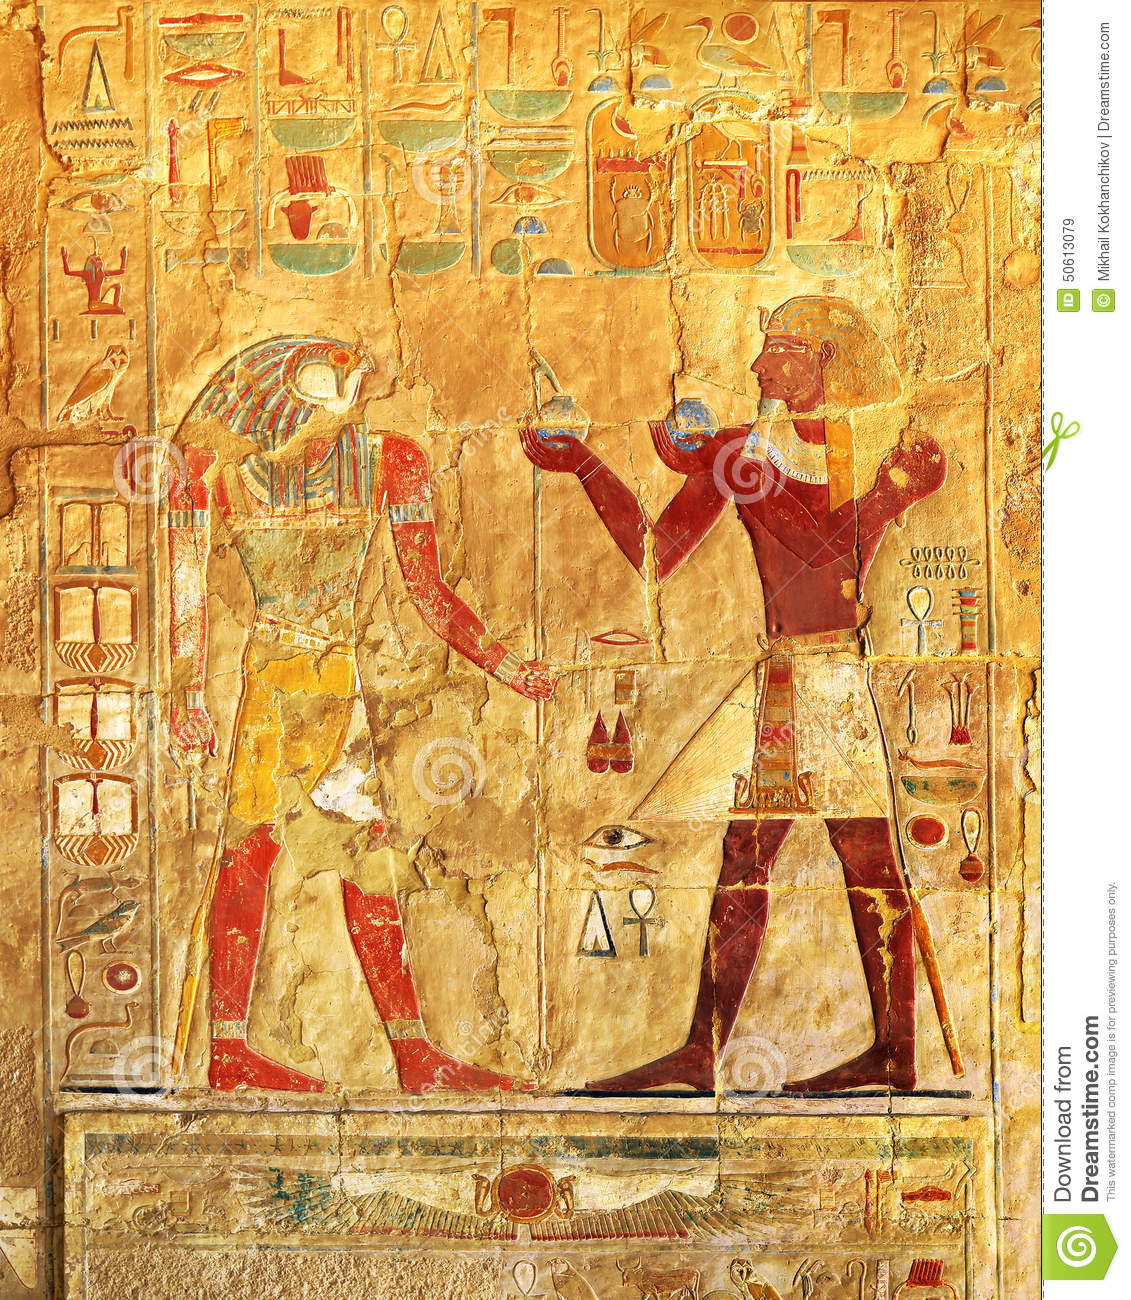 Ancient egypt color images stock image. Image of letter - 50613079